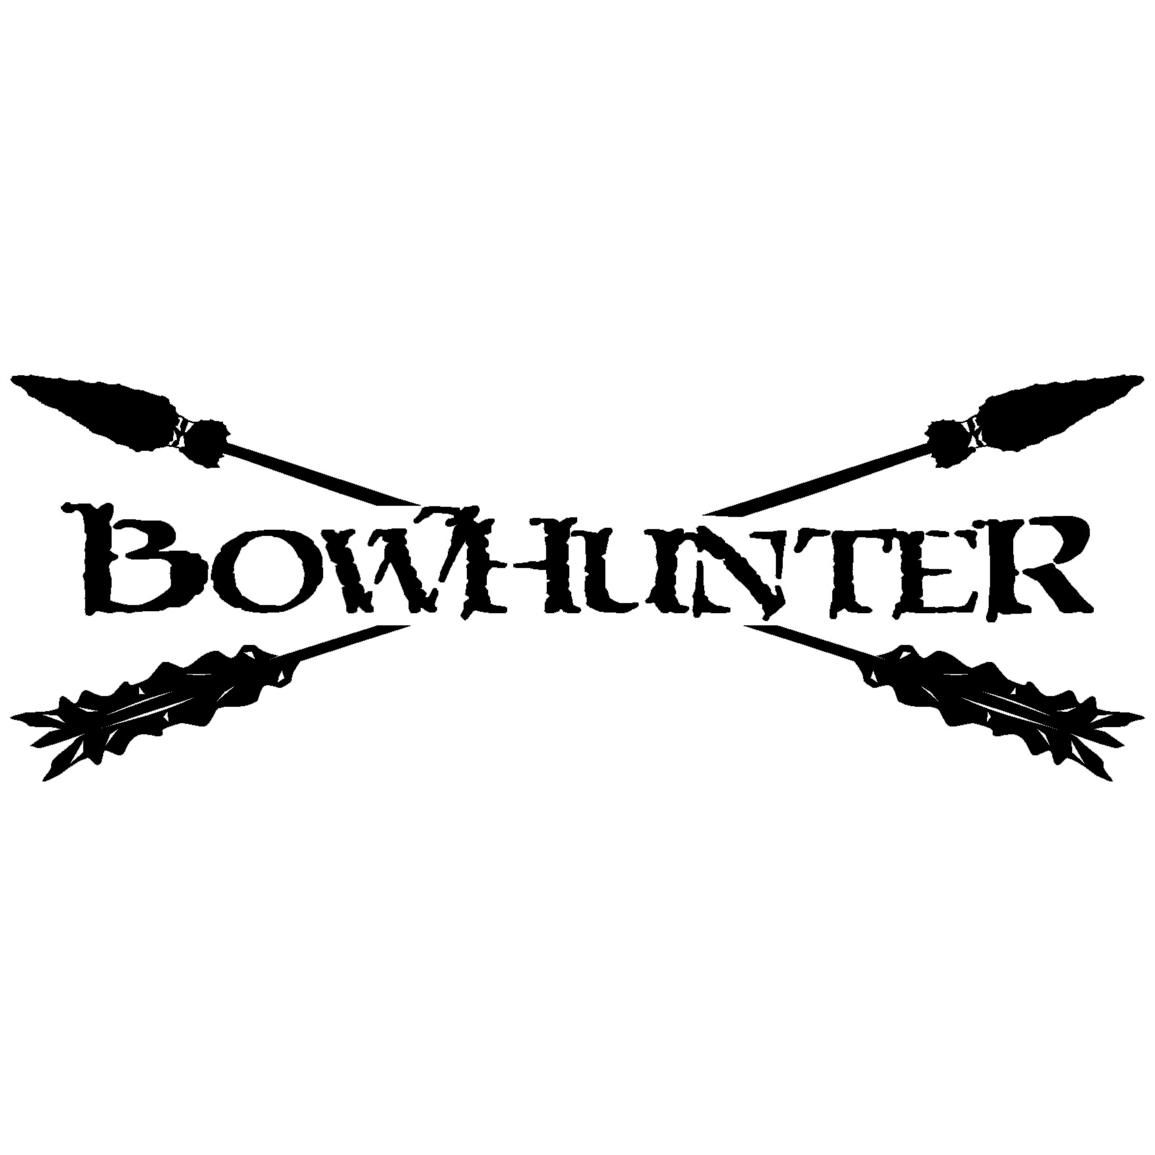 Rear Window Bow Hunting Logo Decals Outdoor Decals Bowhunter - Bow hunting decals for trucks